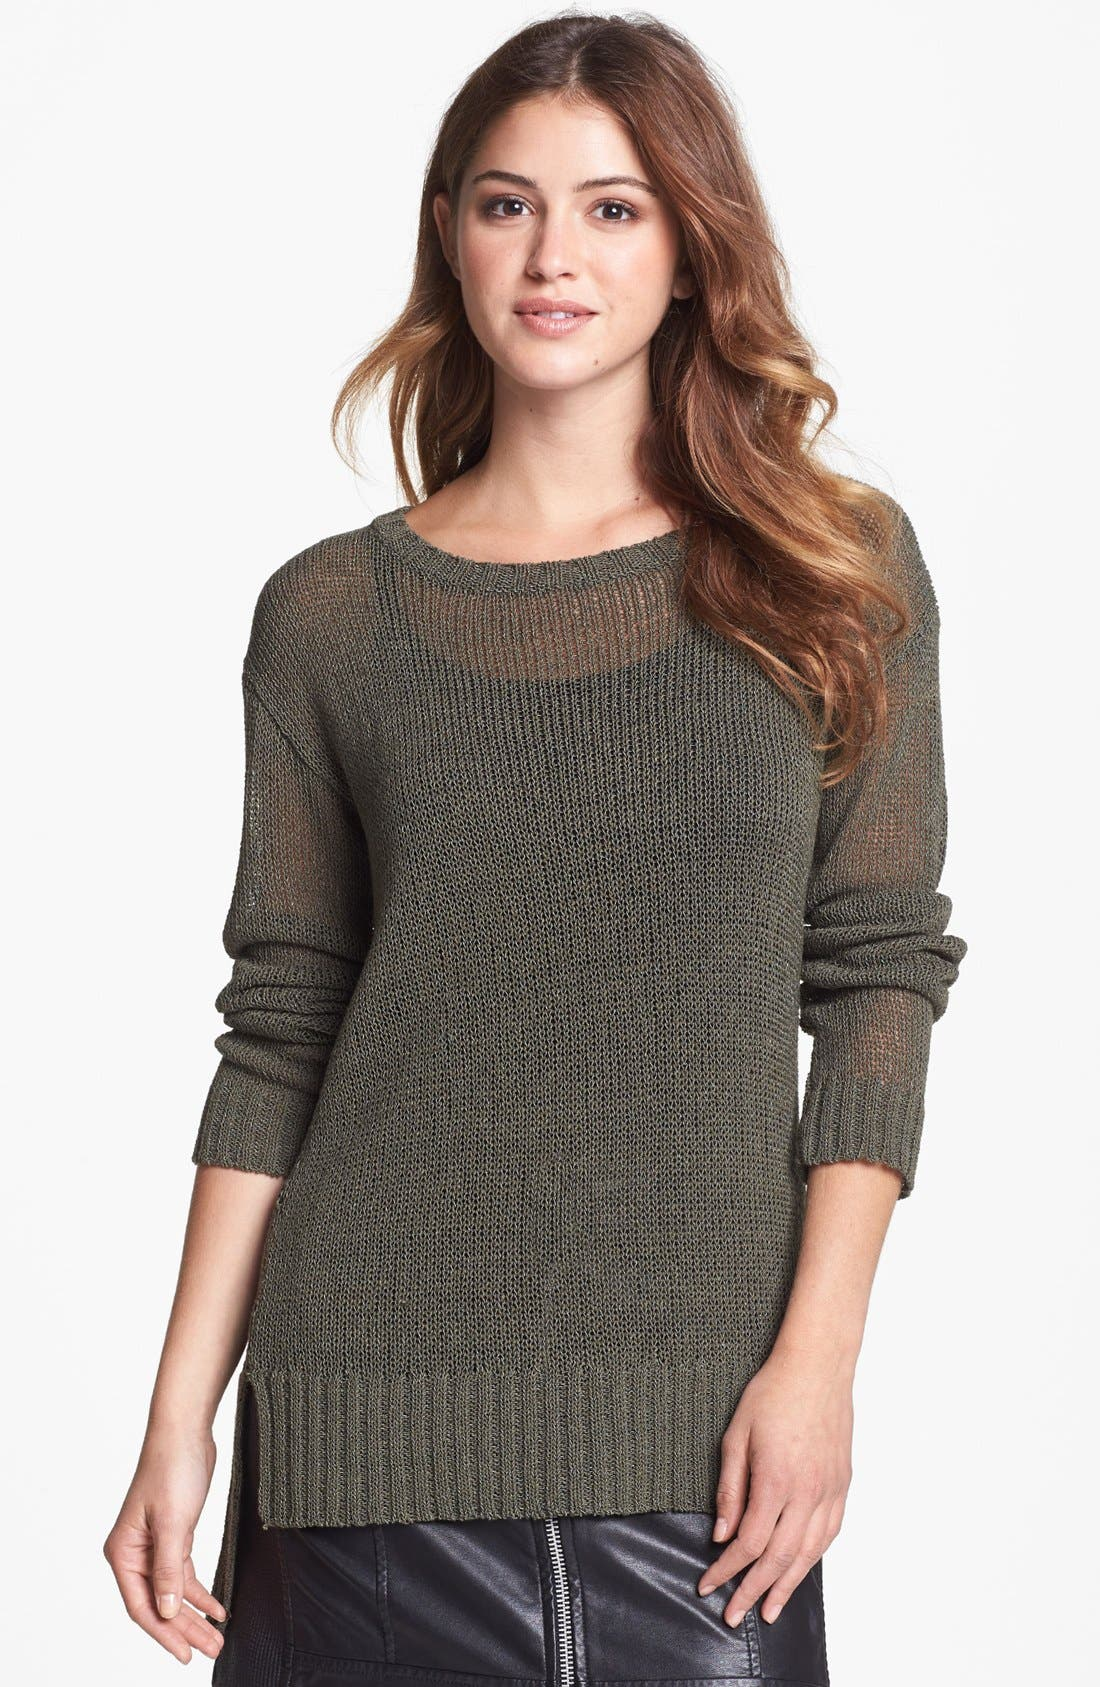 Alternate Image 1 Selected - Two by Vince Camuto Open Knit High/Low Sweater